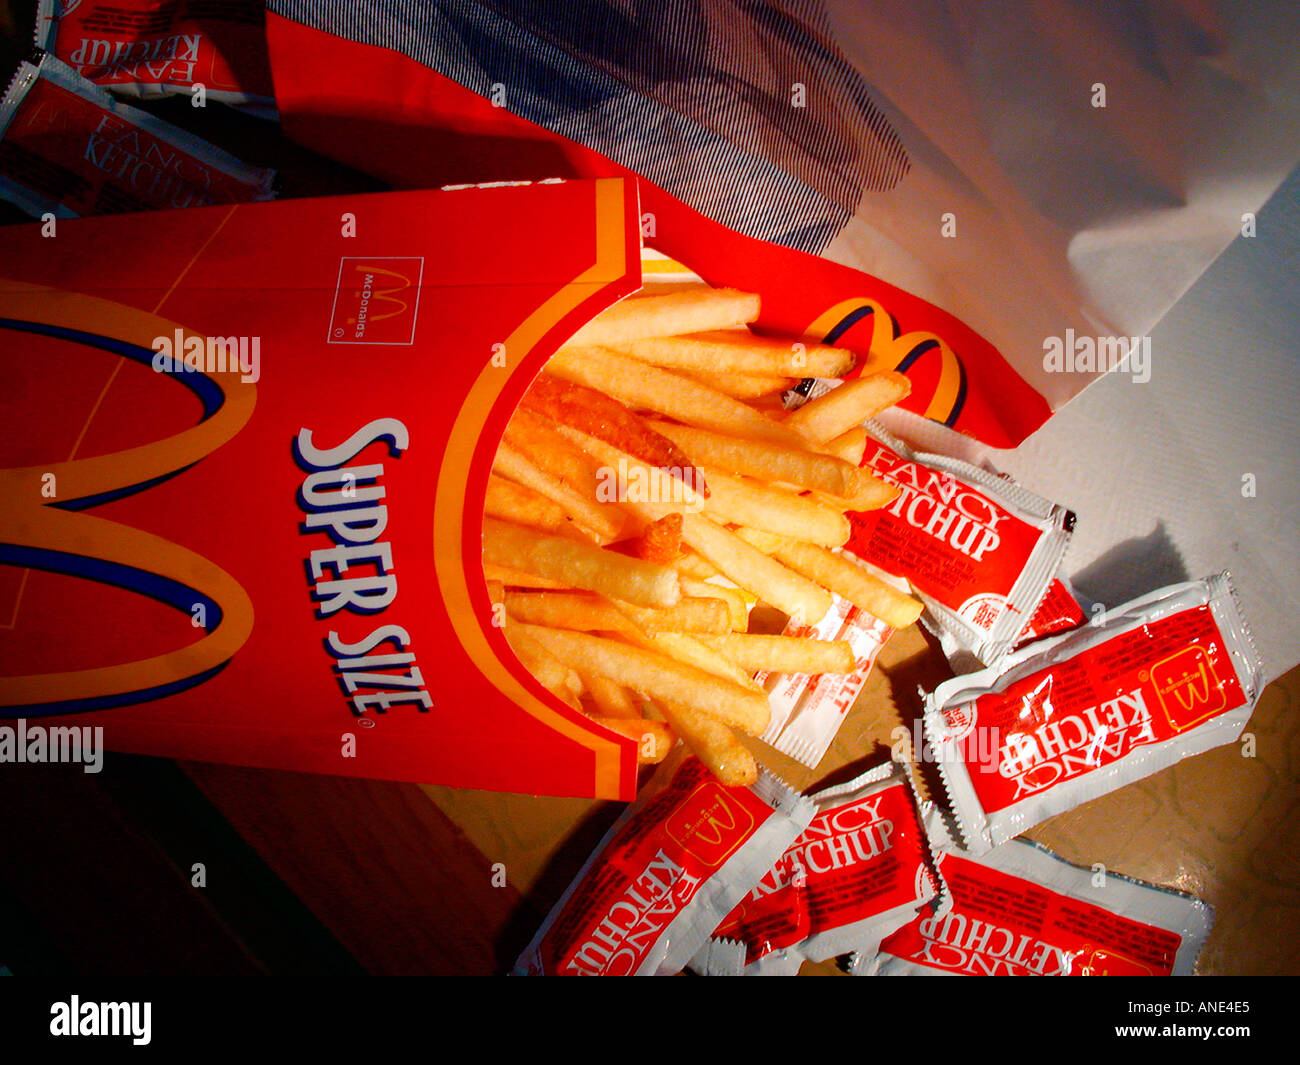 A Super Size Container Of Mcdonald S French Fries Stock Photo